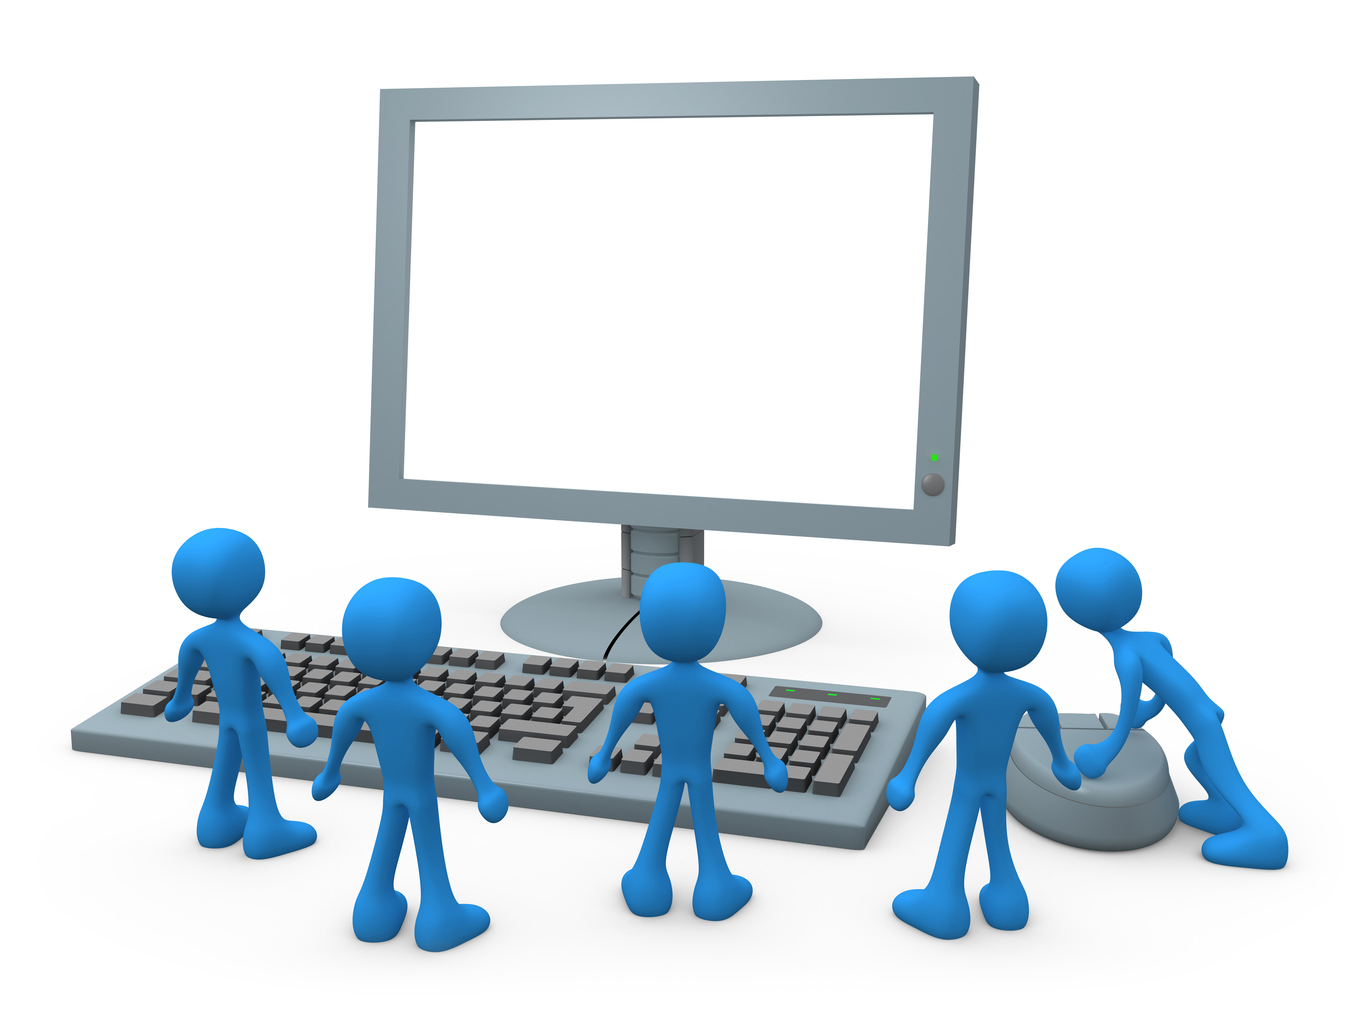 Training clipart. Computer based